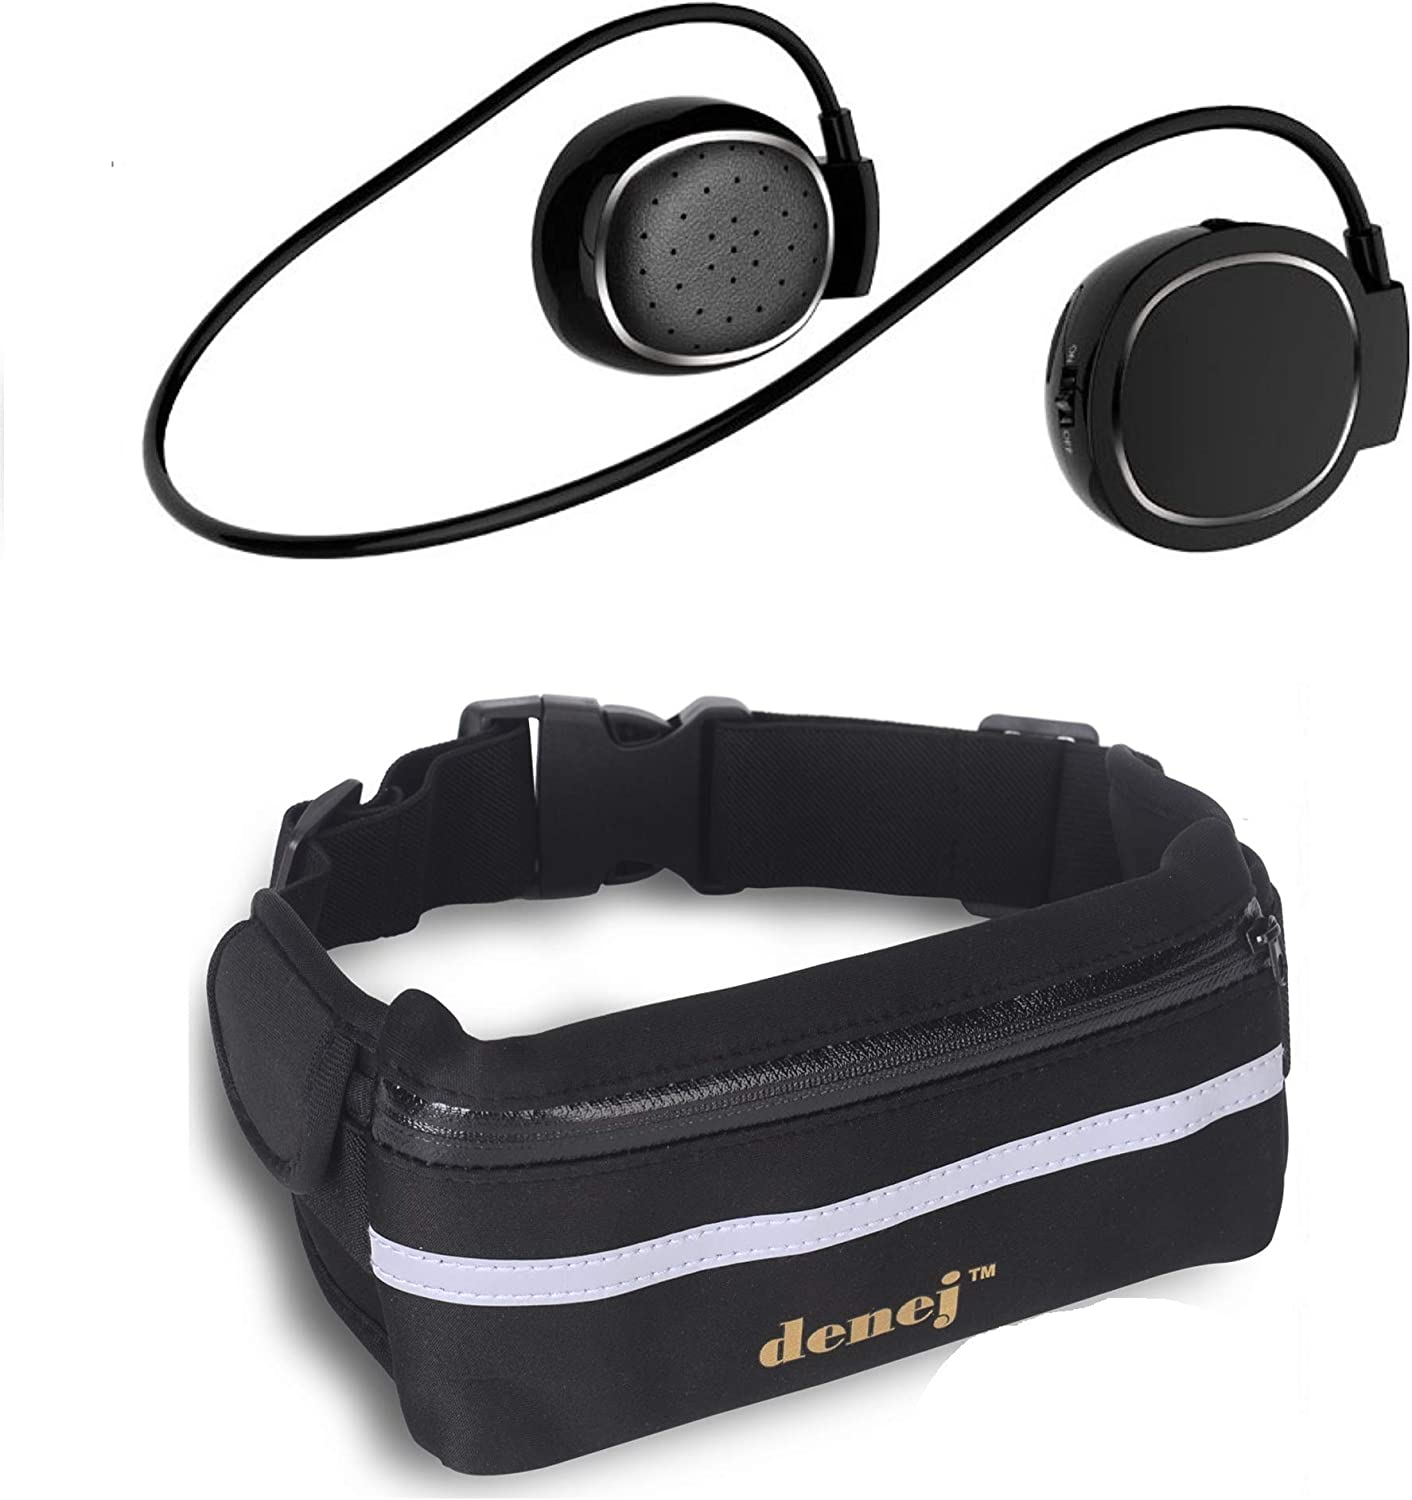 Denej Fanny Pack Phone Holder with Mini On Ear Bluetooth Headphones- Swipe Pad Behind the Head Wireless Headset and Waist Pack - Neck Bluetooth Headphone Set with Pouch Gift Pack Gold